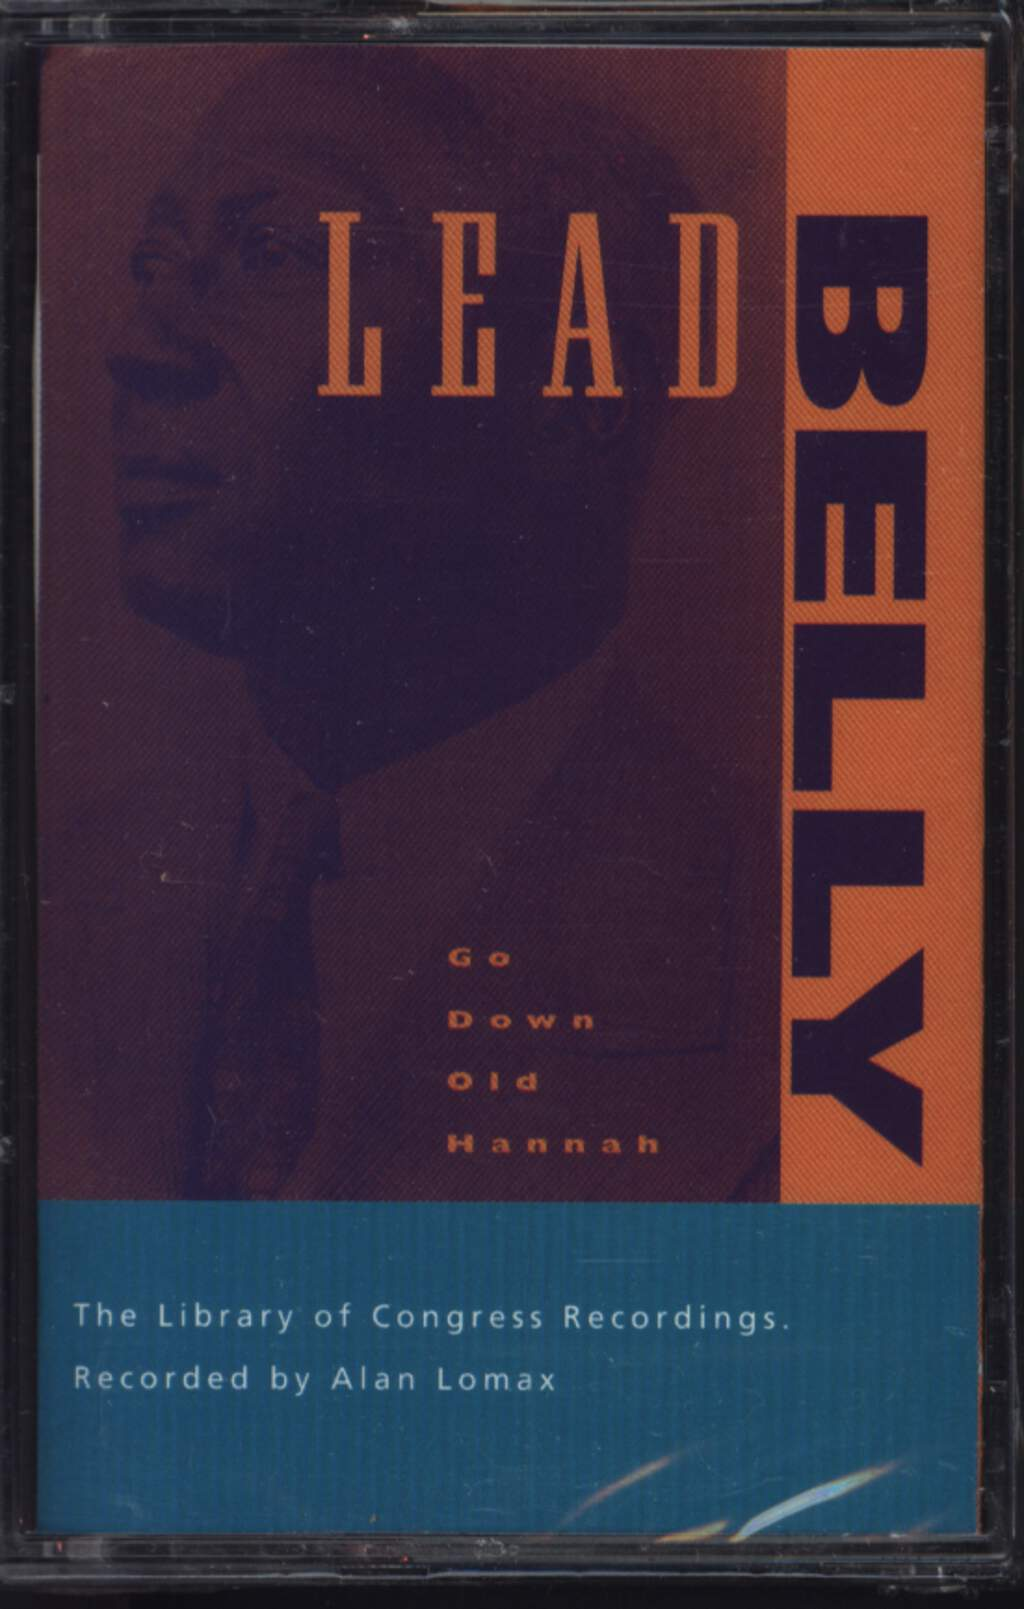 Leadbelly: Go Down Old Hannah - The Library Of Congress Recordings, Volume Six, Compact Cassette